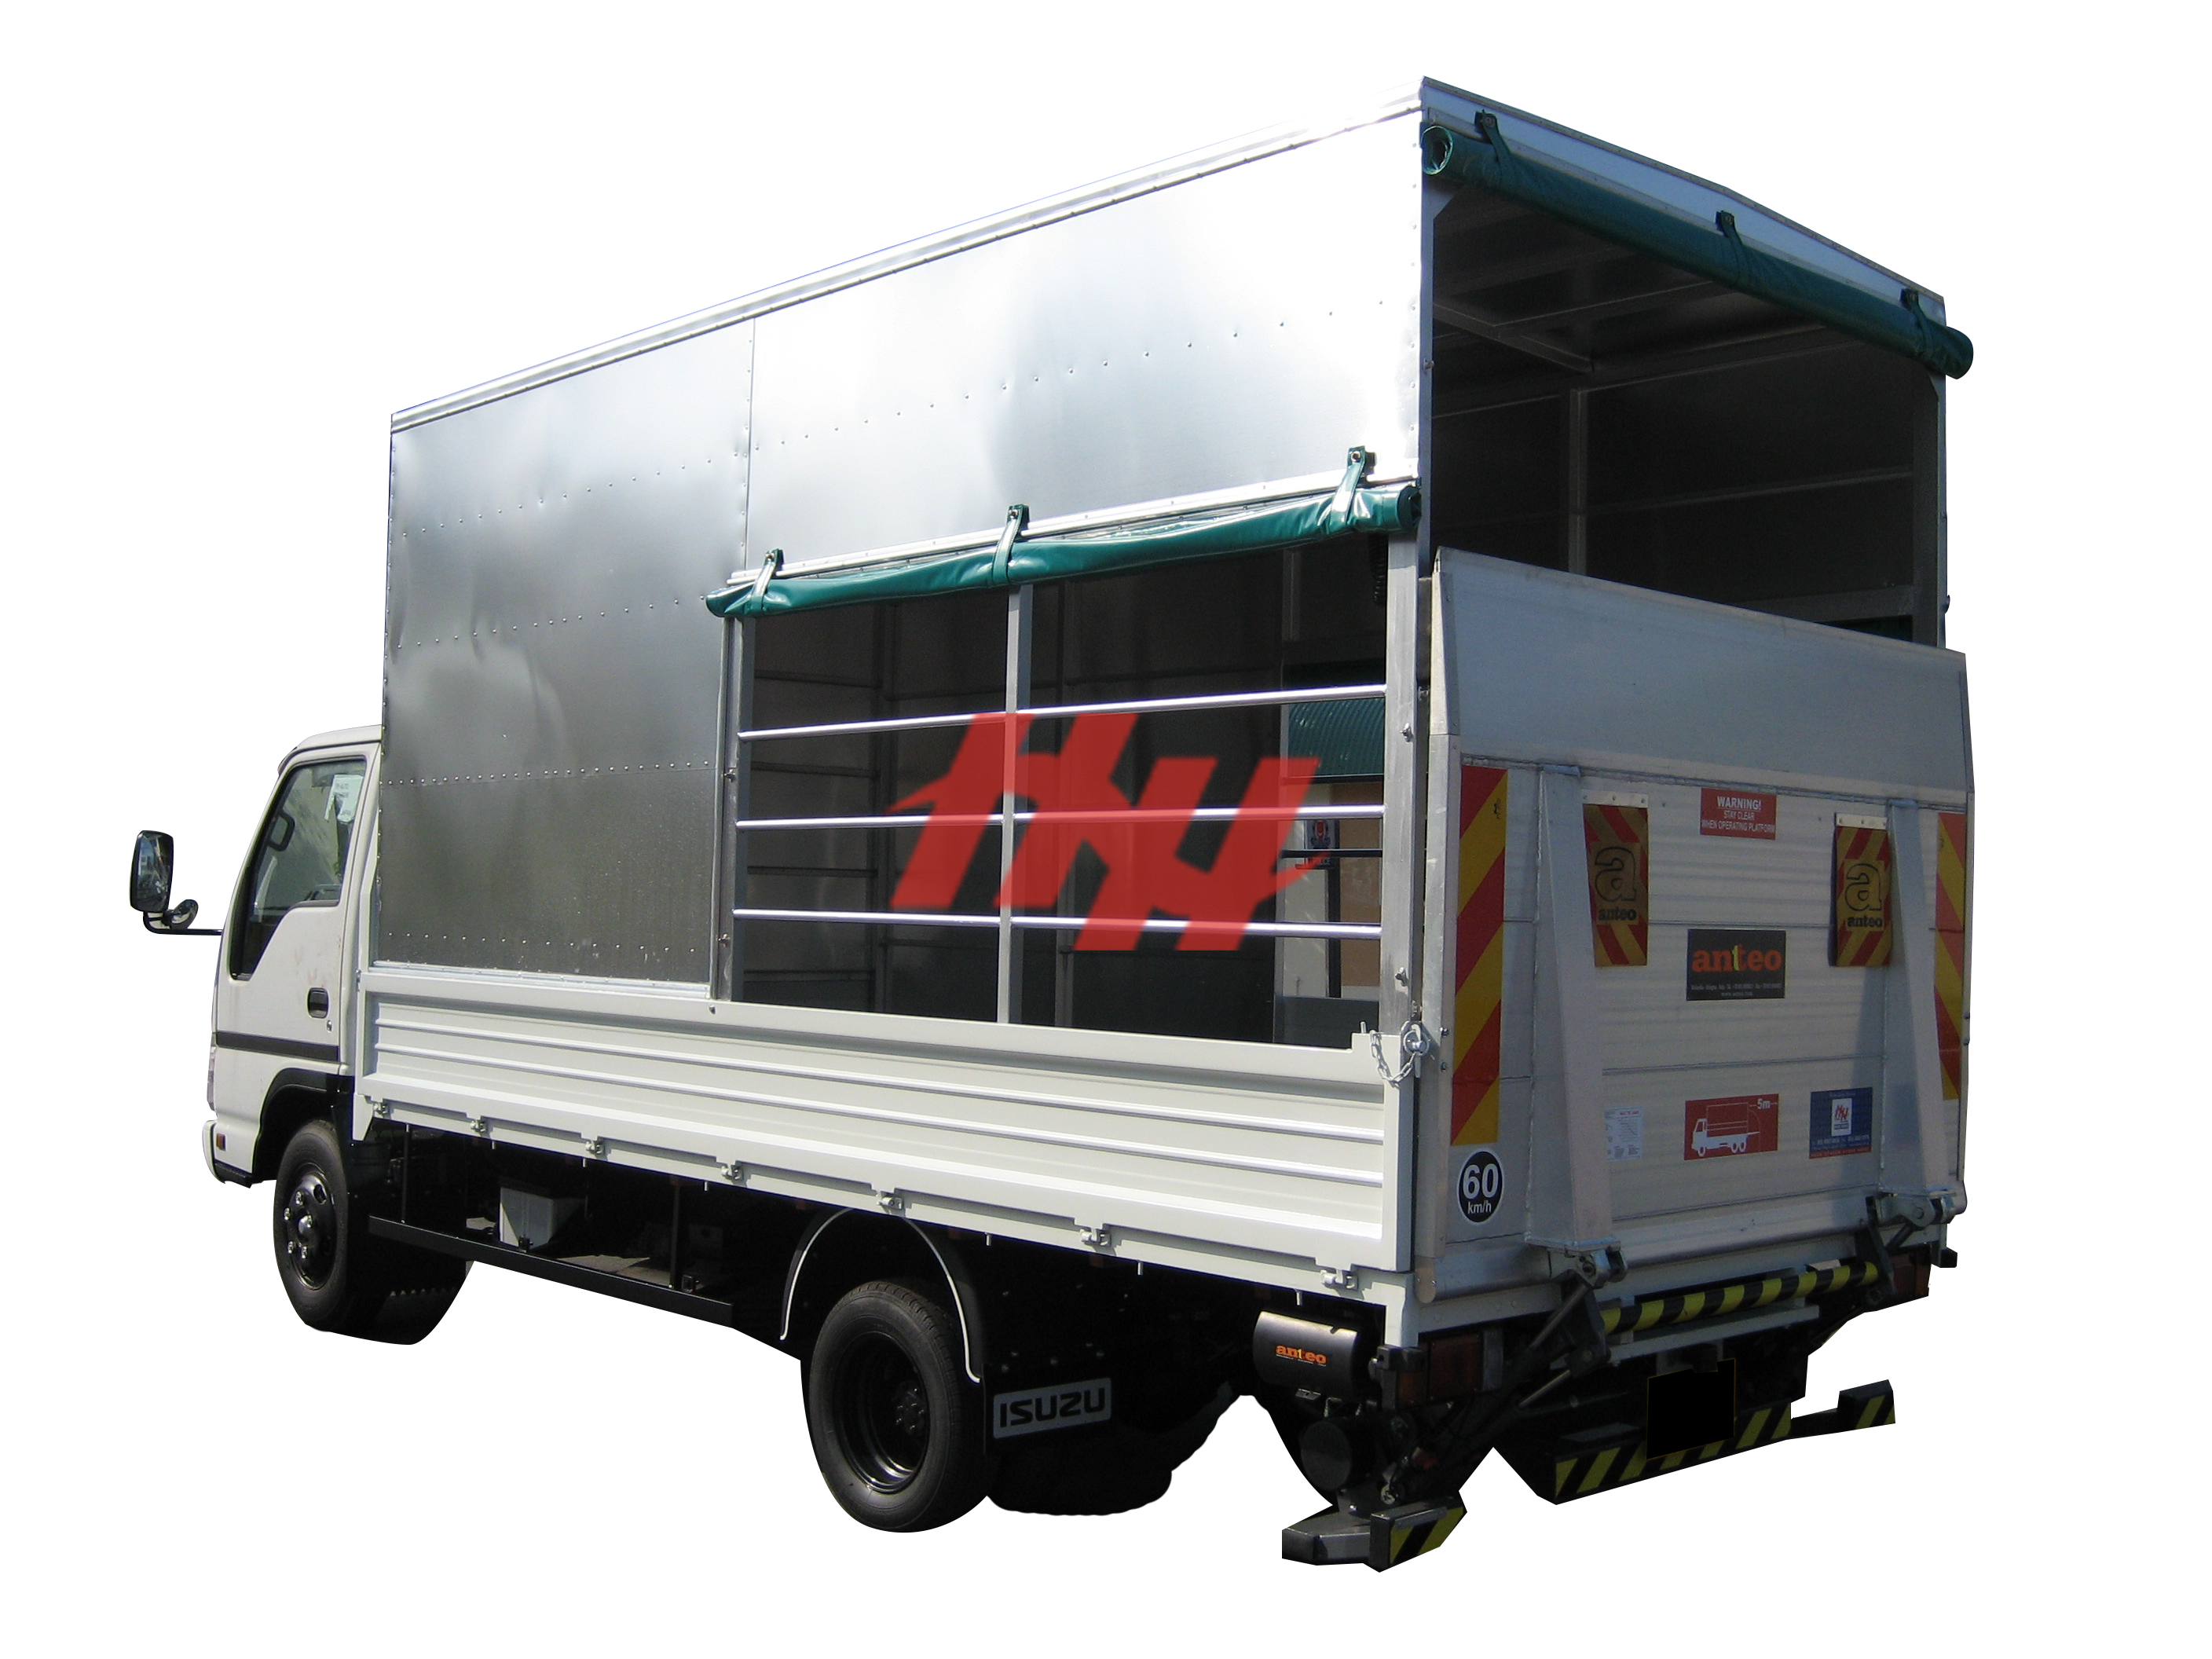 Steel body  full length canopy with roll down canvas  side pannel  steel railing and tailgates edit